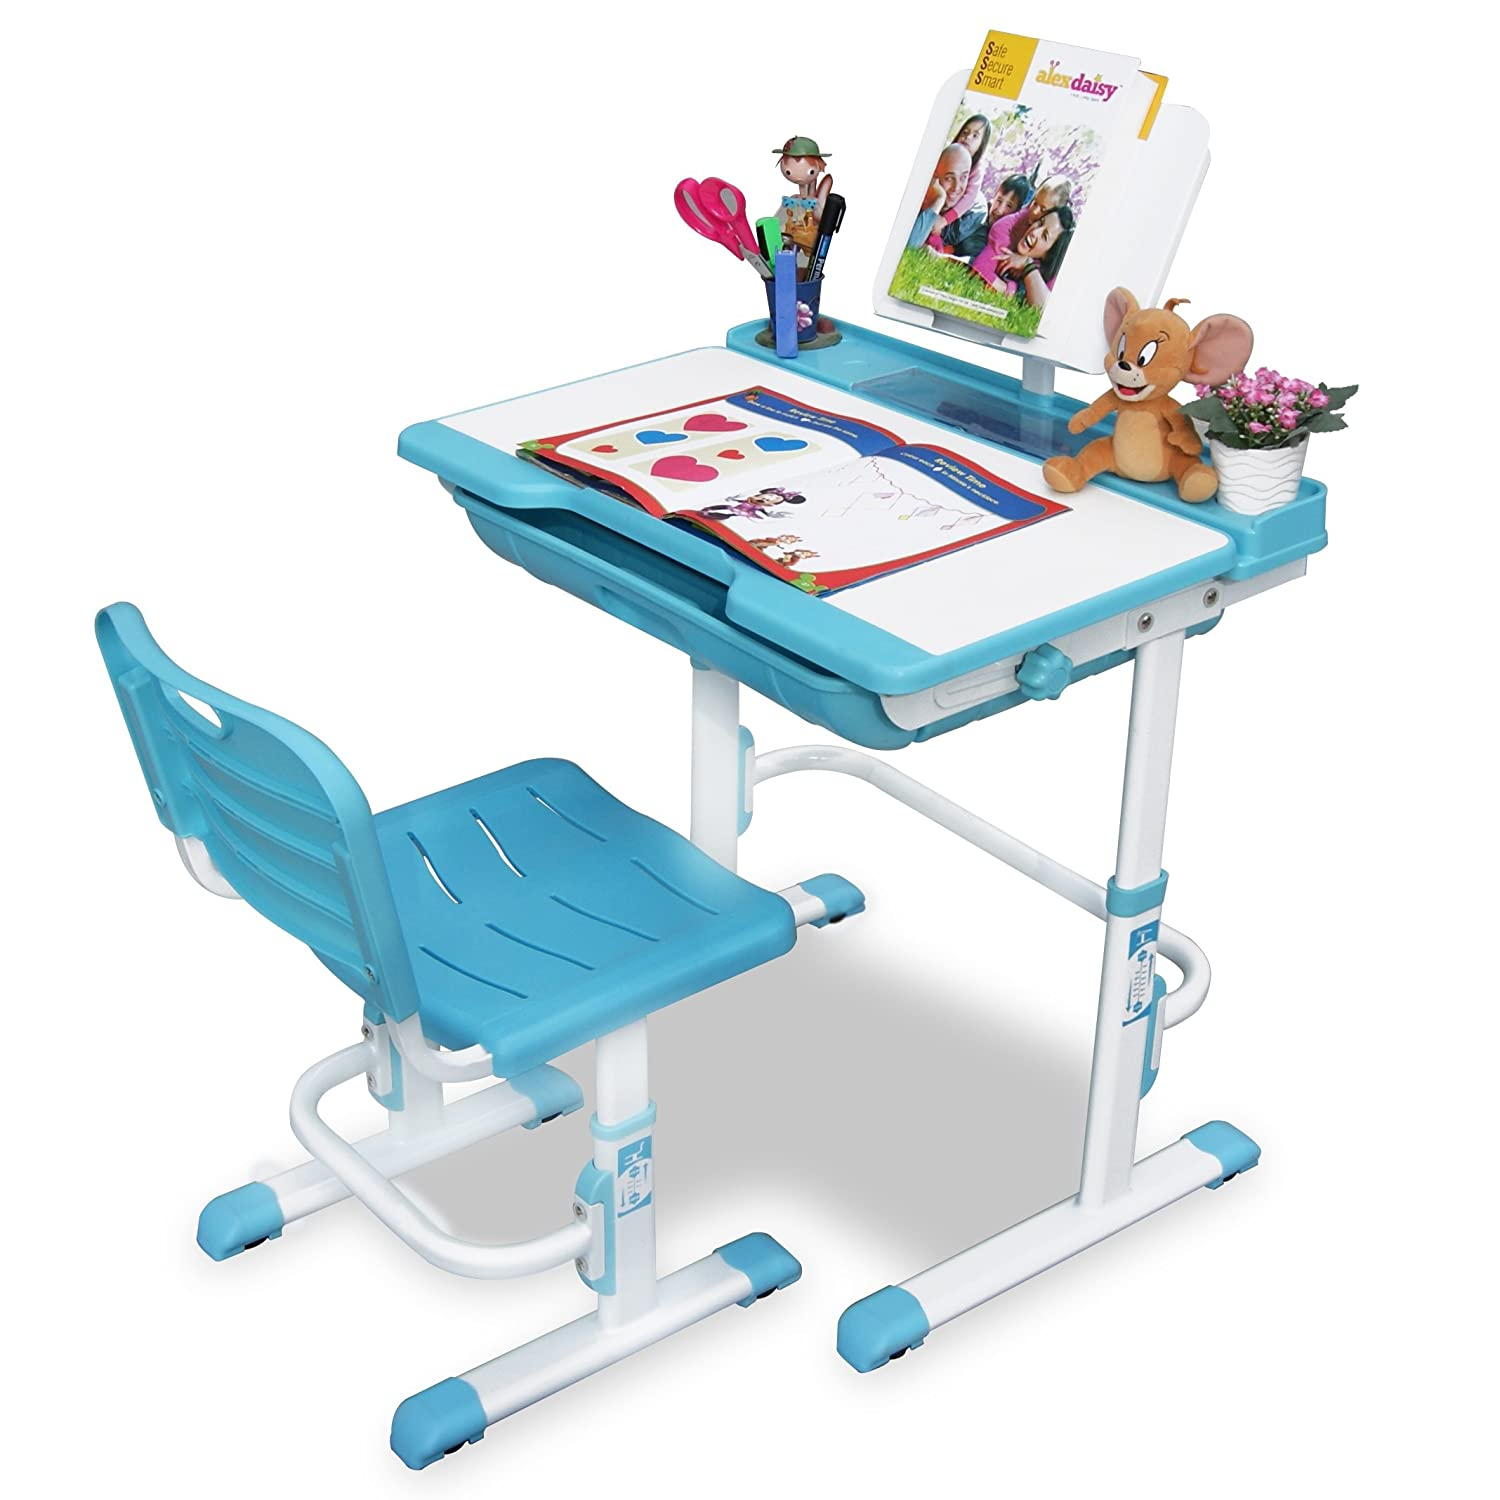 Alex Daisy Pluto Kids Height Adjustable Study Table U0026 Chair Set   Blue:  Amazon.in: Home U0026 Kitchen